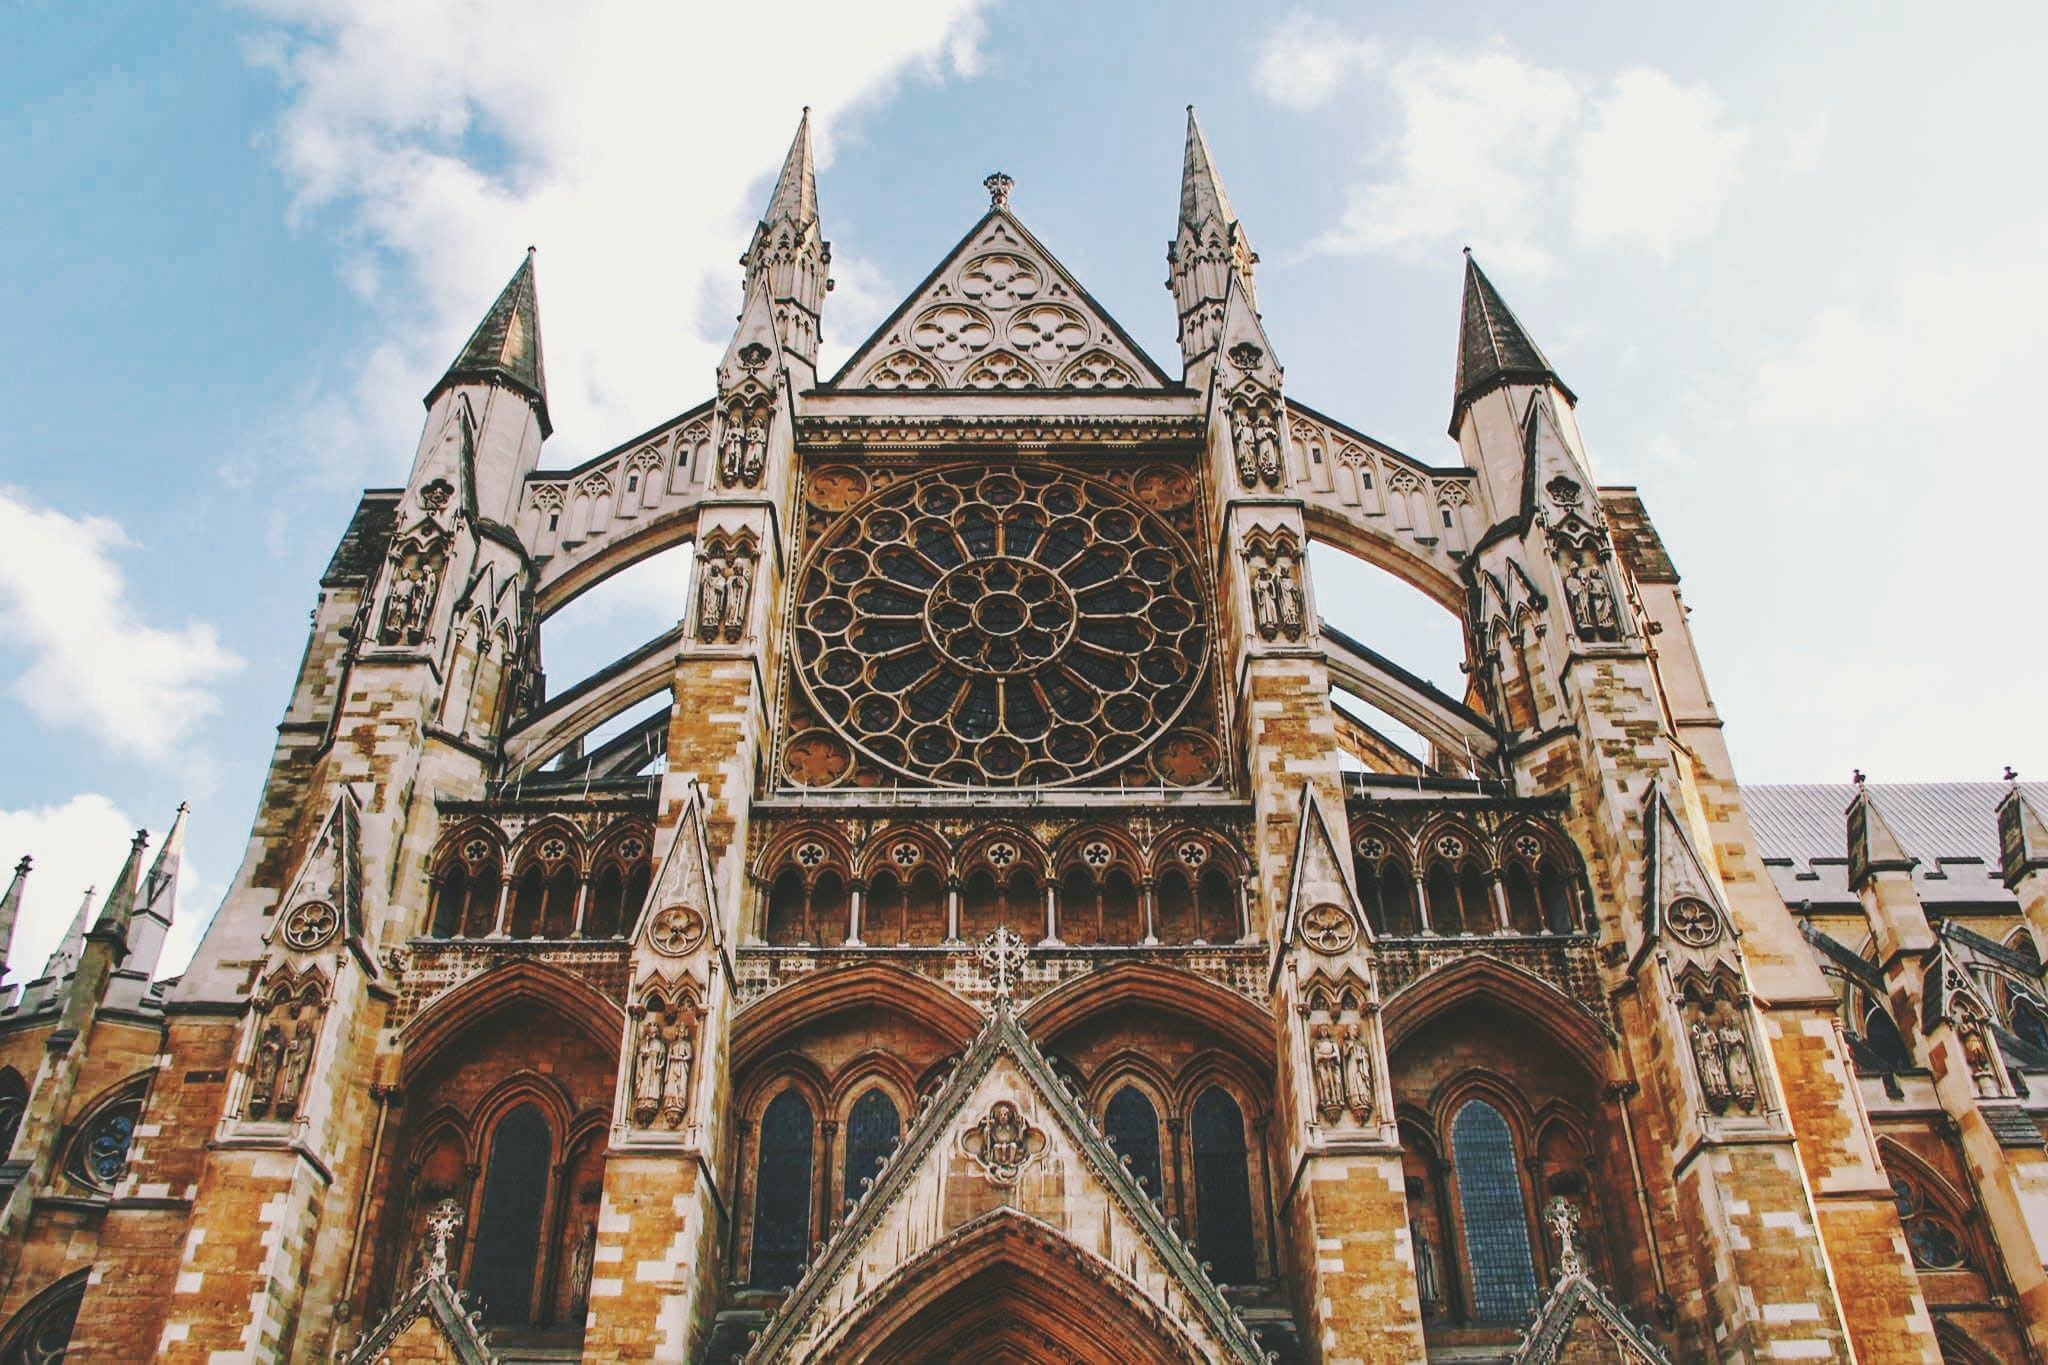 Low Angle Photography of Beige and Brown Cathedral